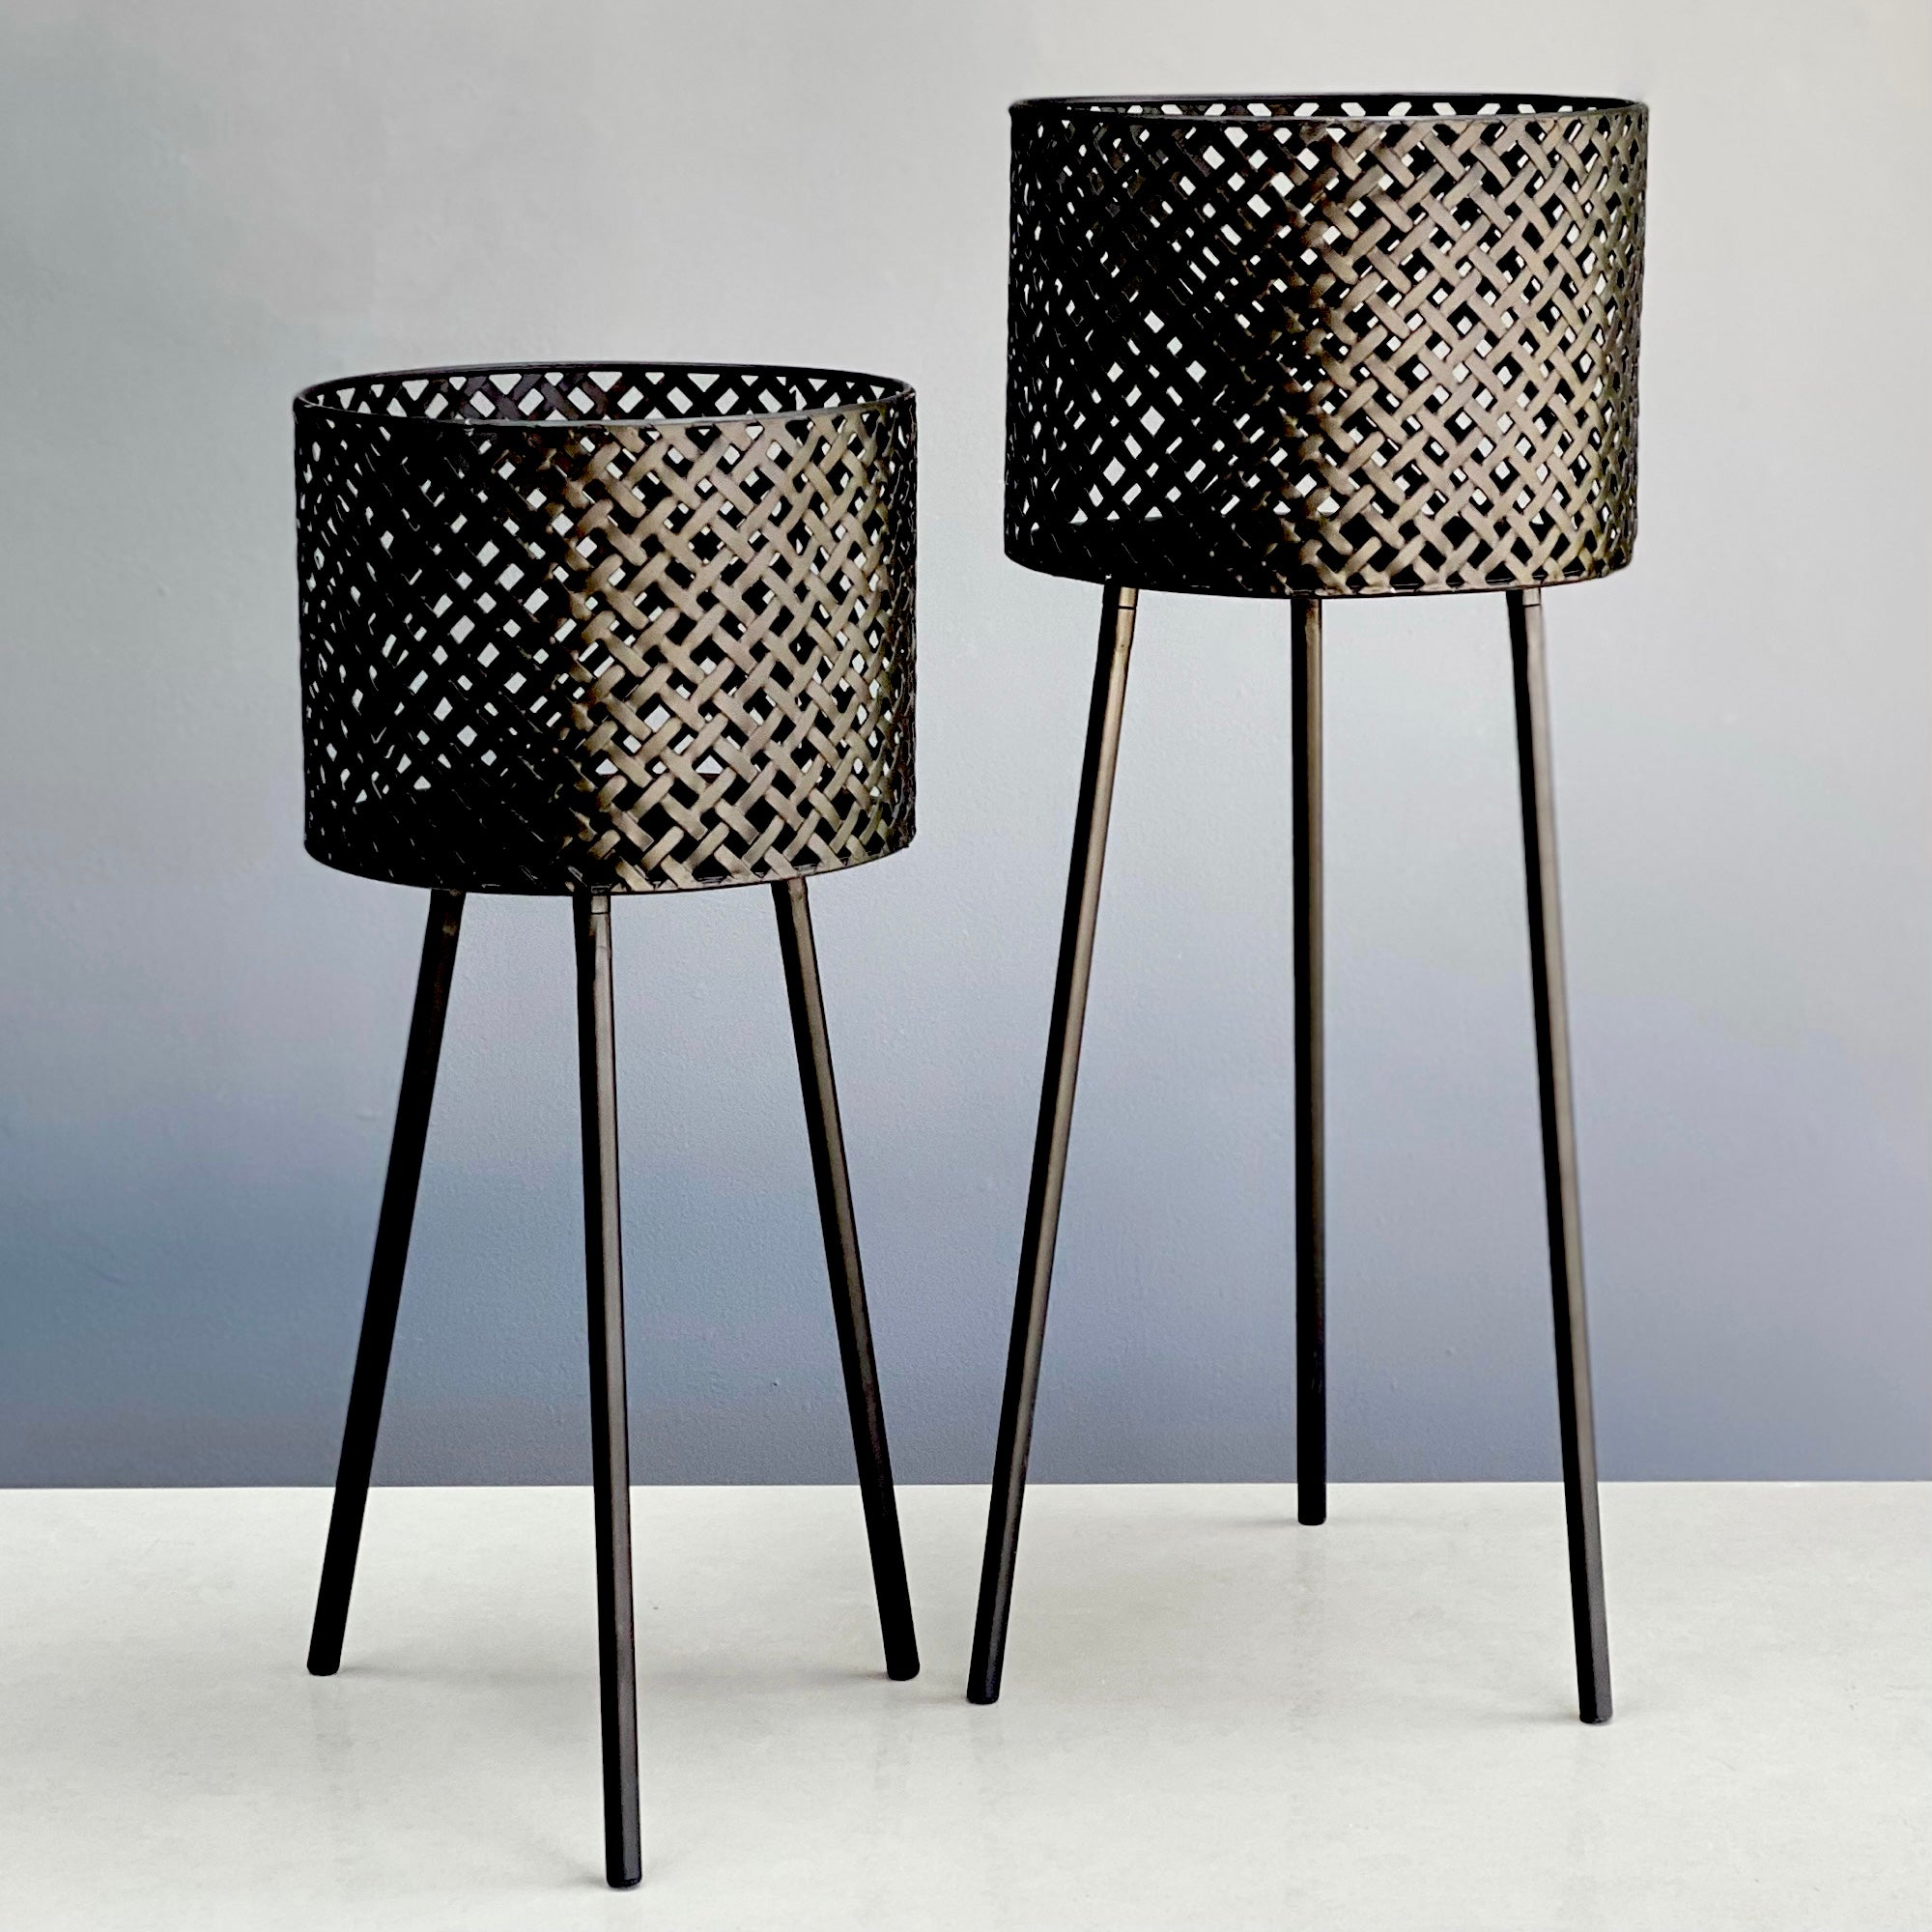 Black Perforated Metal Planter Set